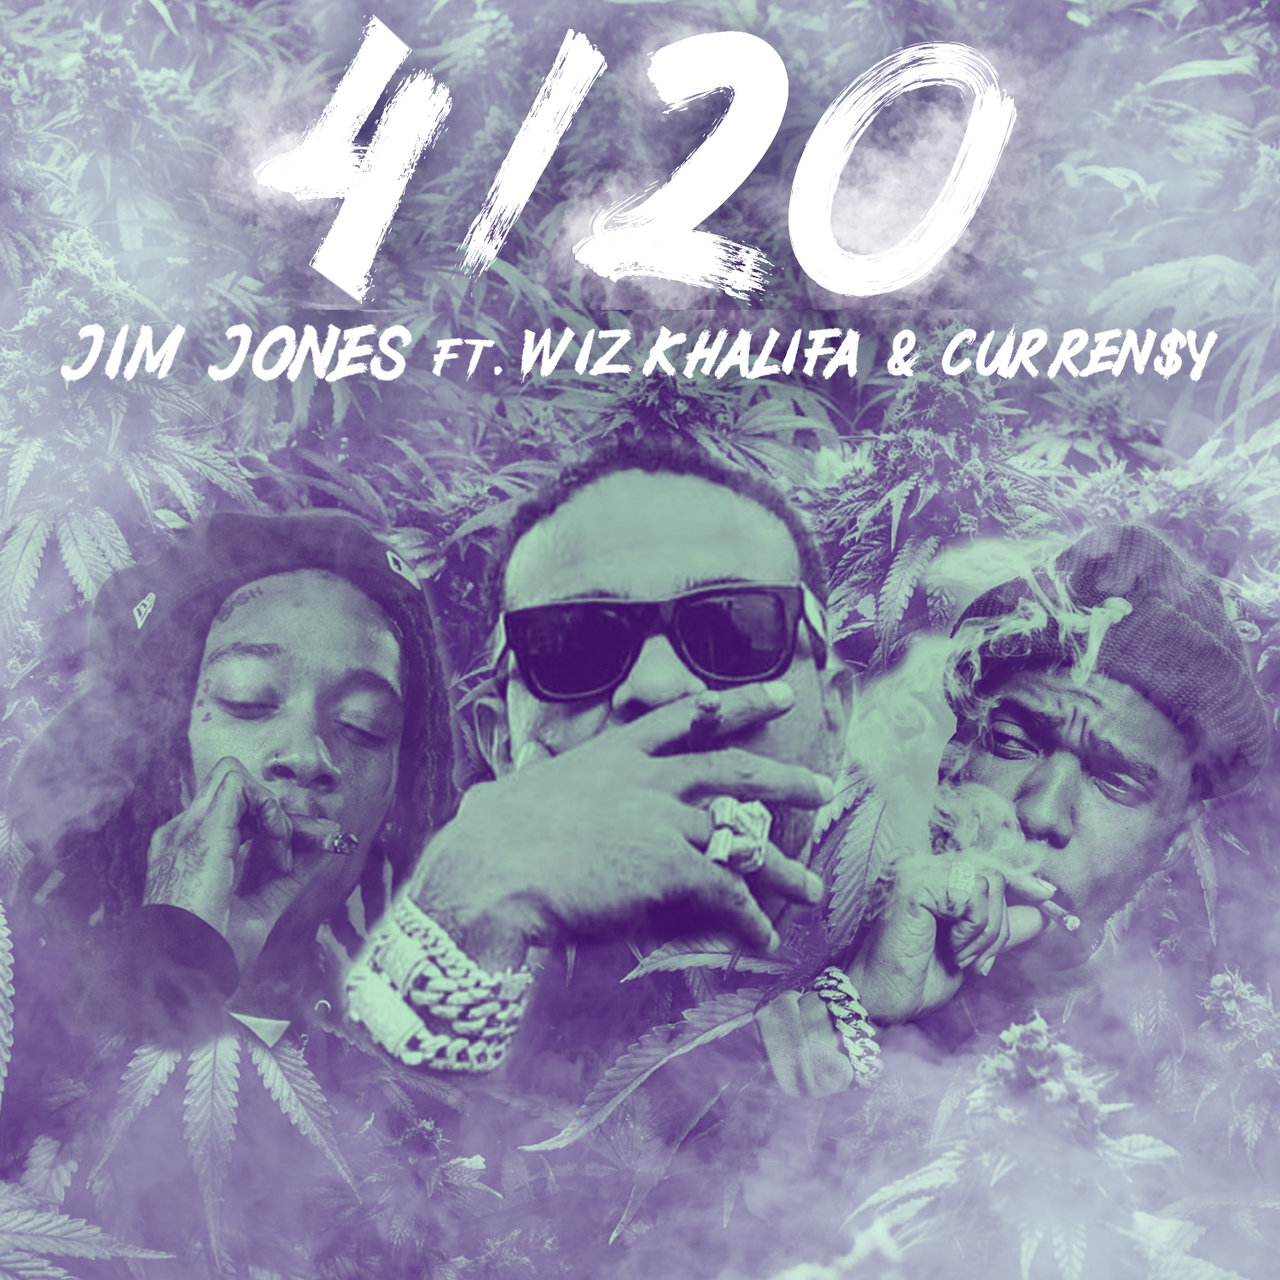 Jim Jones - 4/20 (feat. Wiz Khalifa & Curren$y)